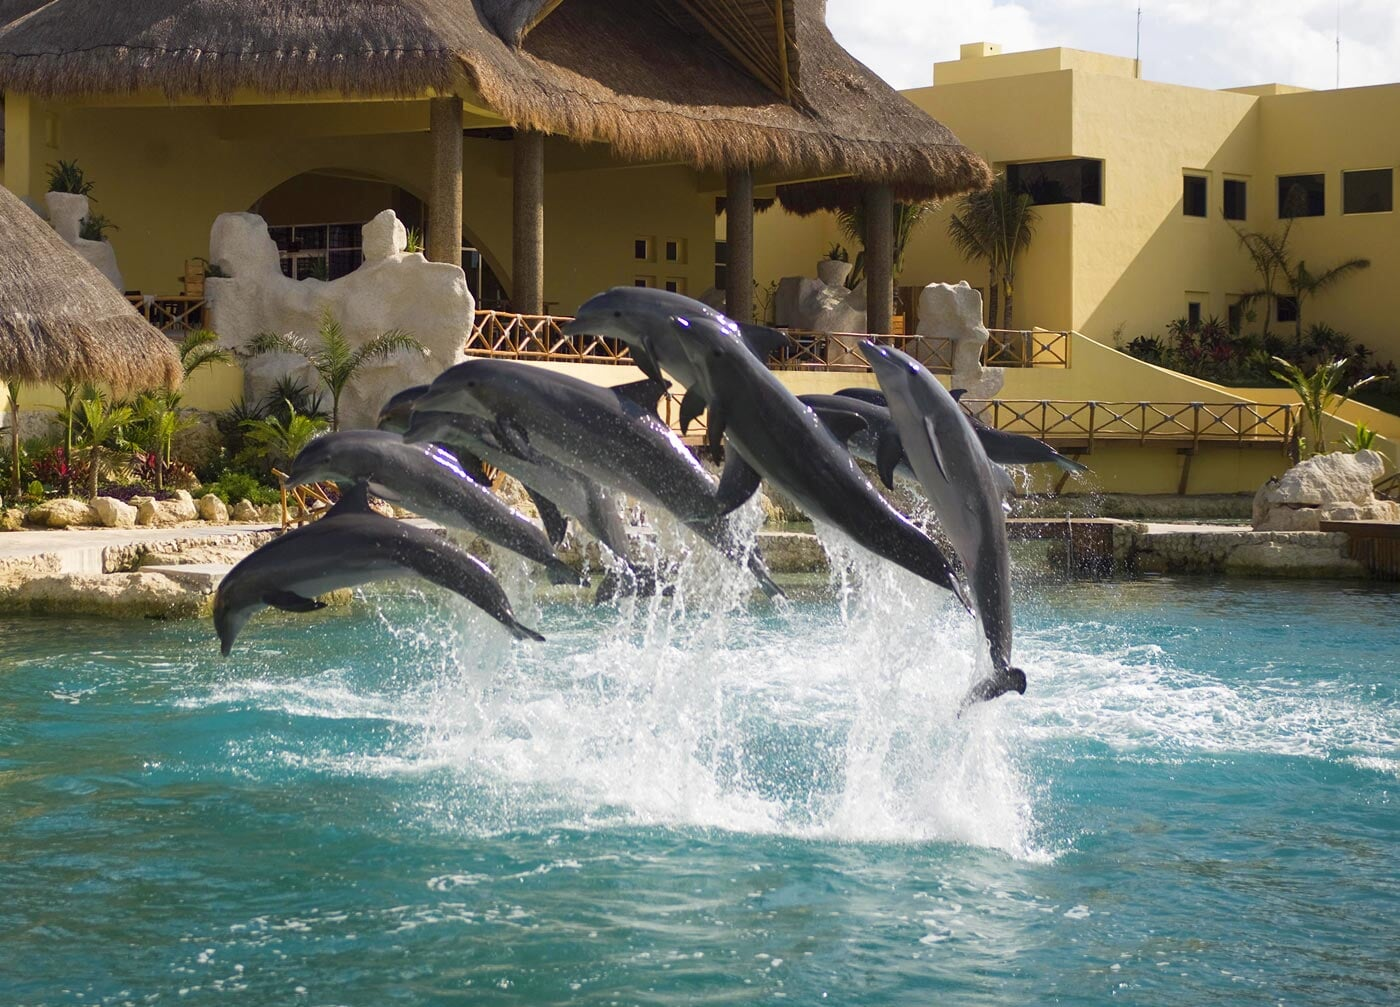 group of dolphins jump in the air performing stunts